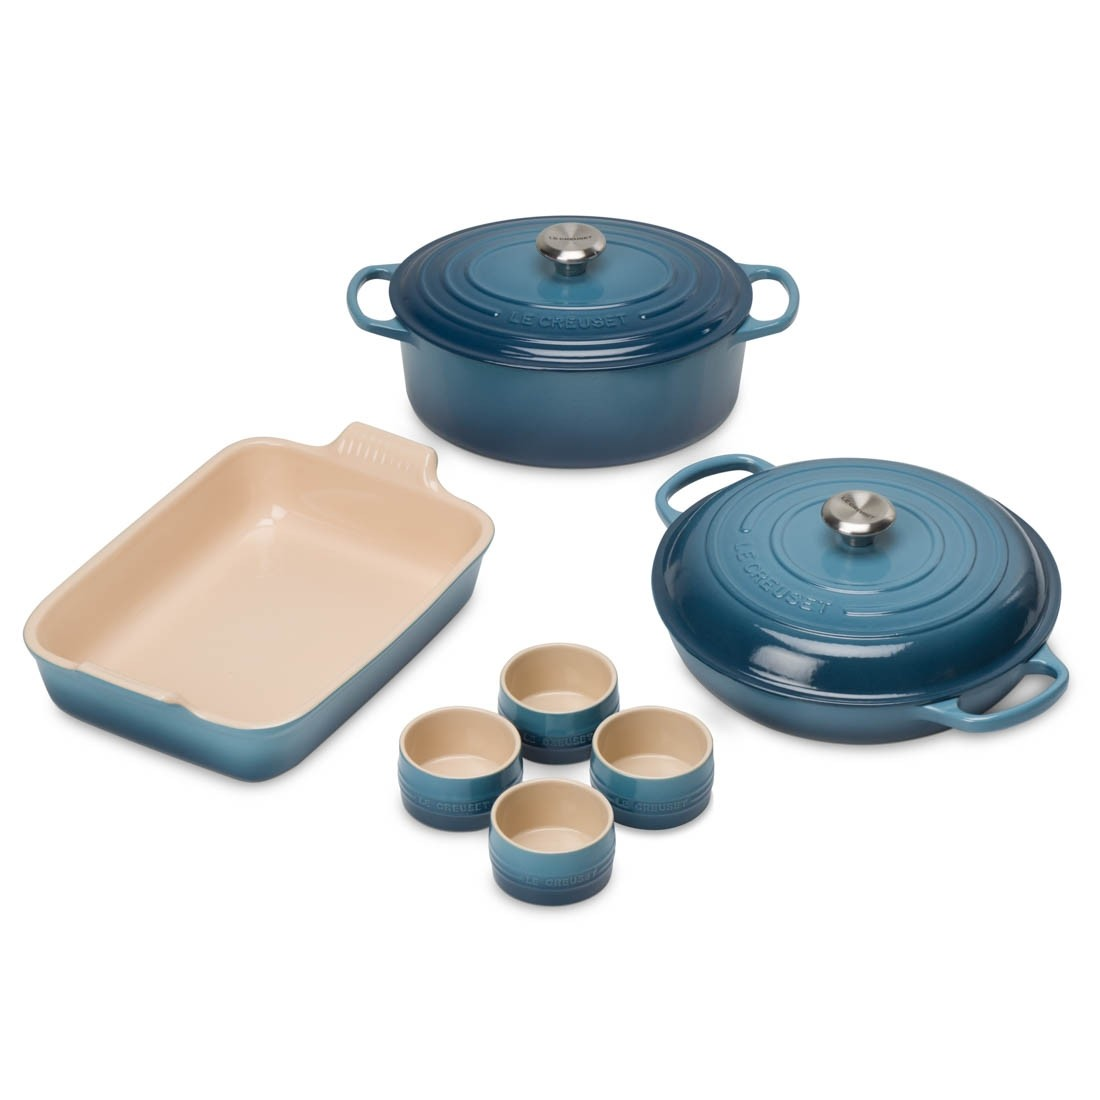 cast_iron_taste_of_the_city_festive_entertaining_set_marine_le_creuset_1.1504517784.jpg